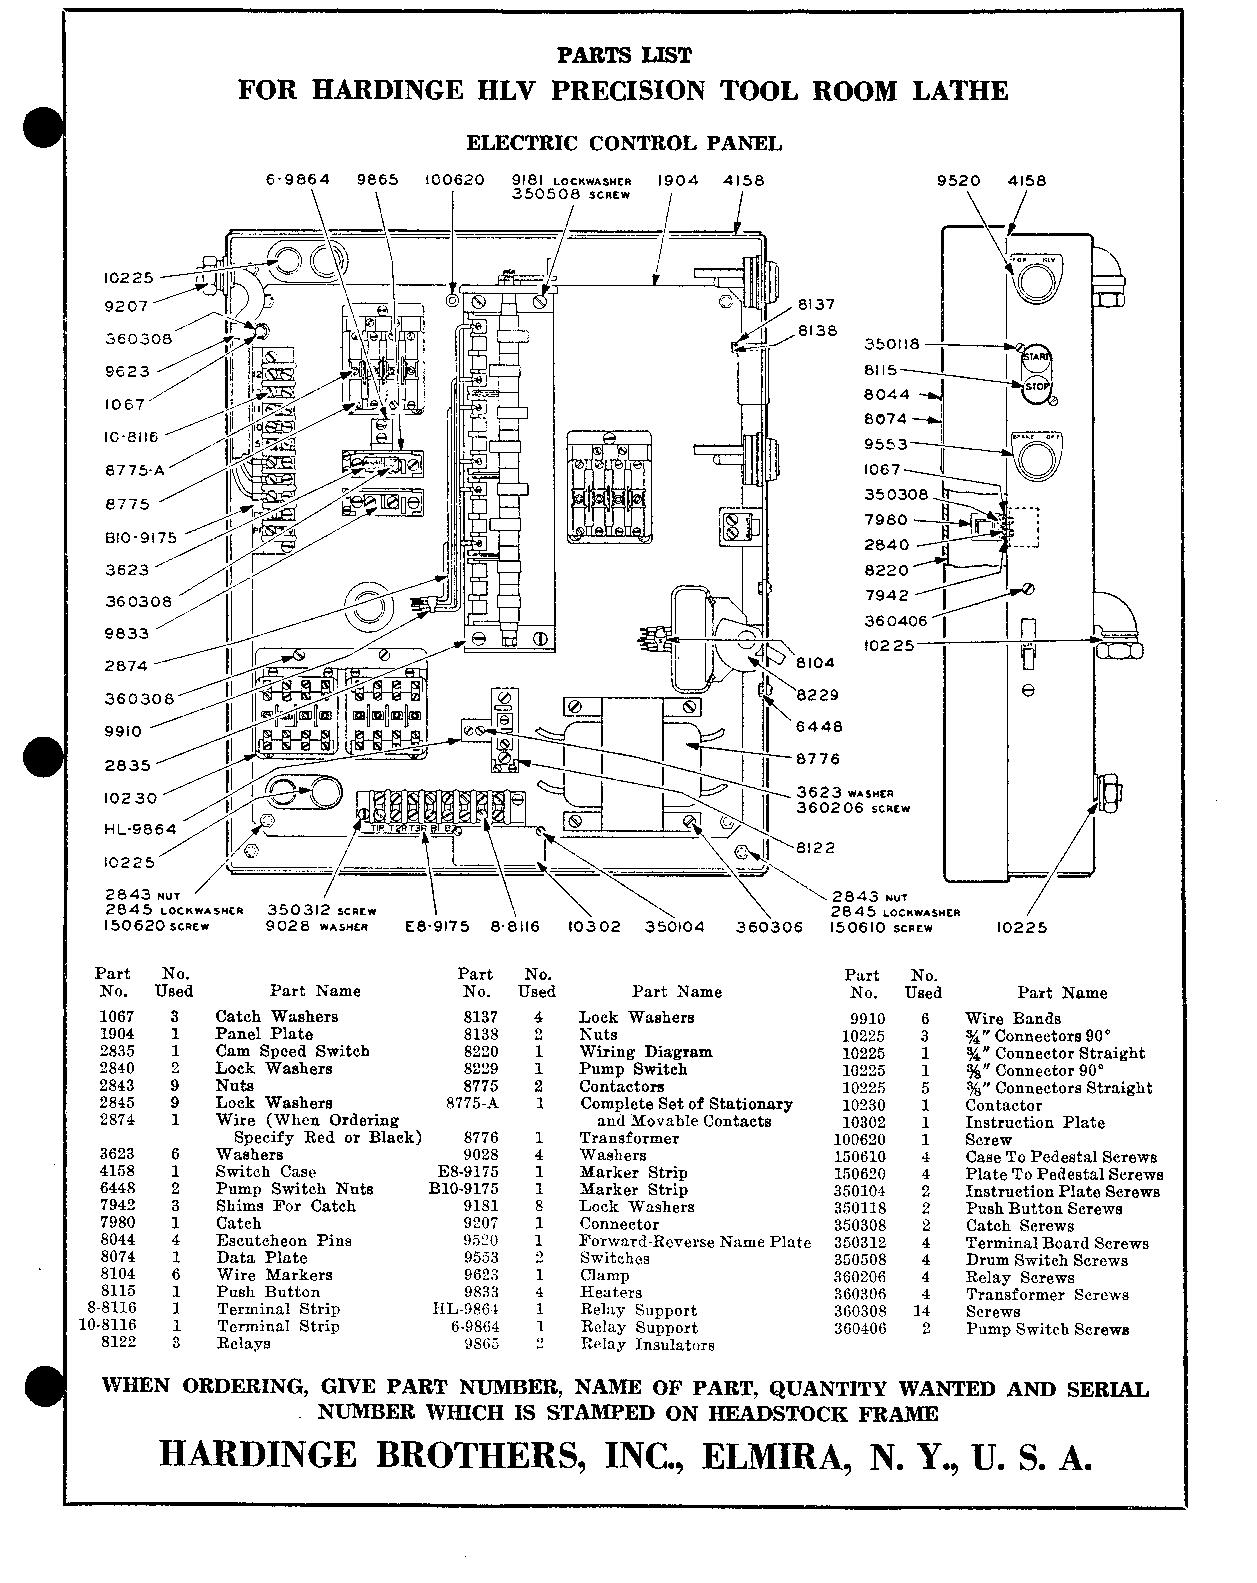 hardinge hlv parts list rh csparks com breaker box parts diagram box truck parts diagram